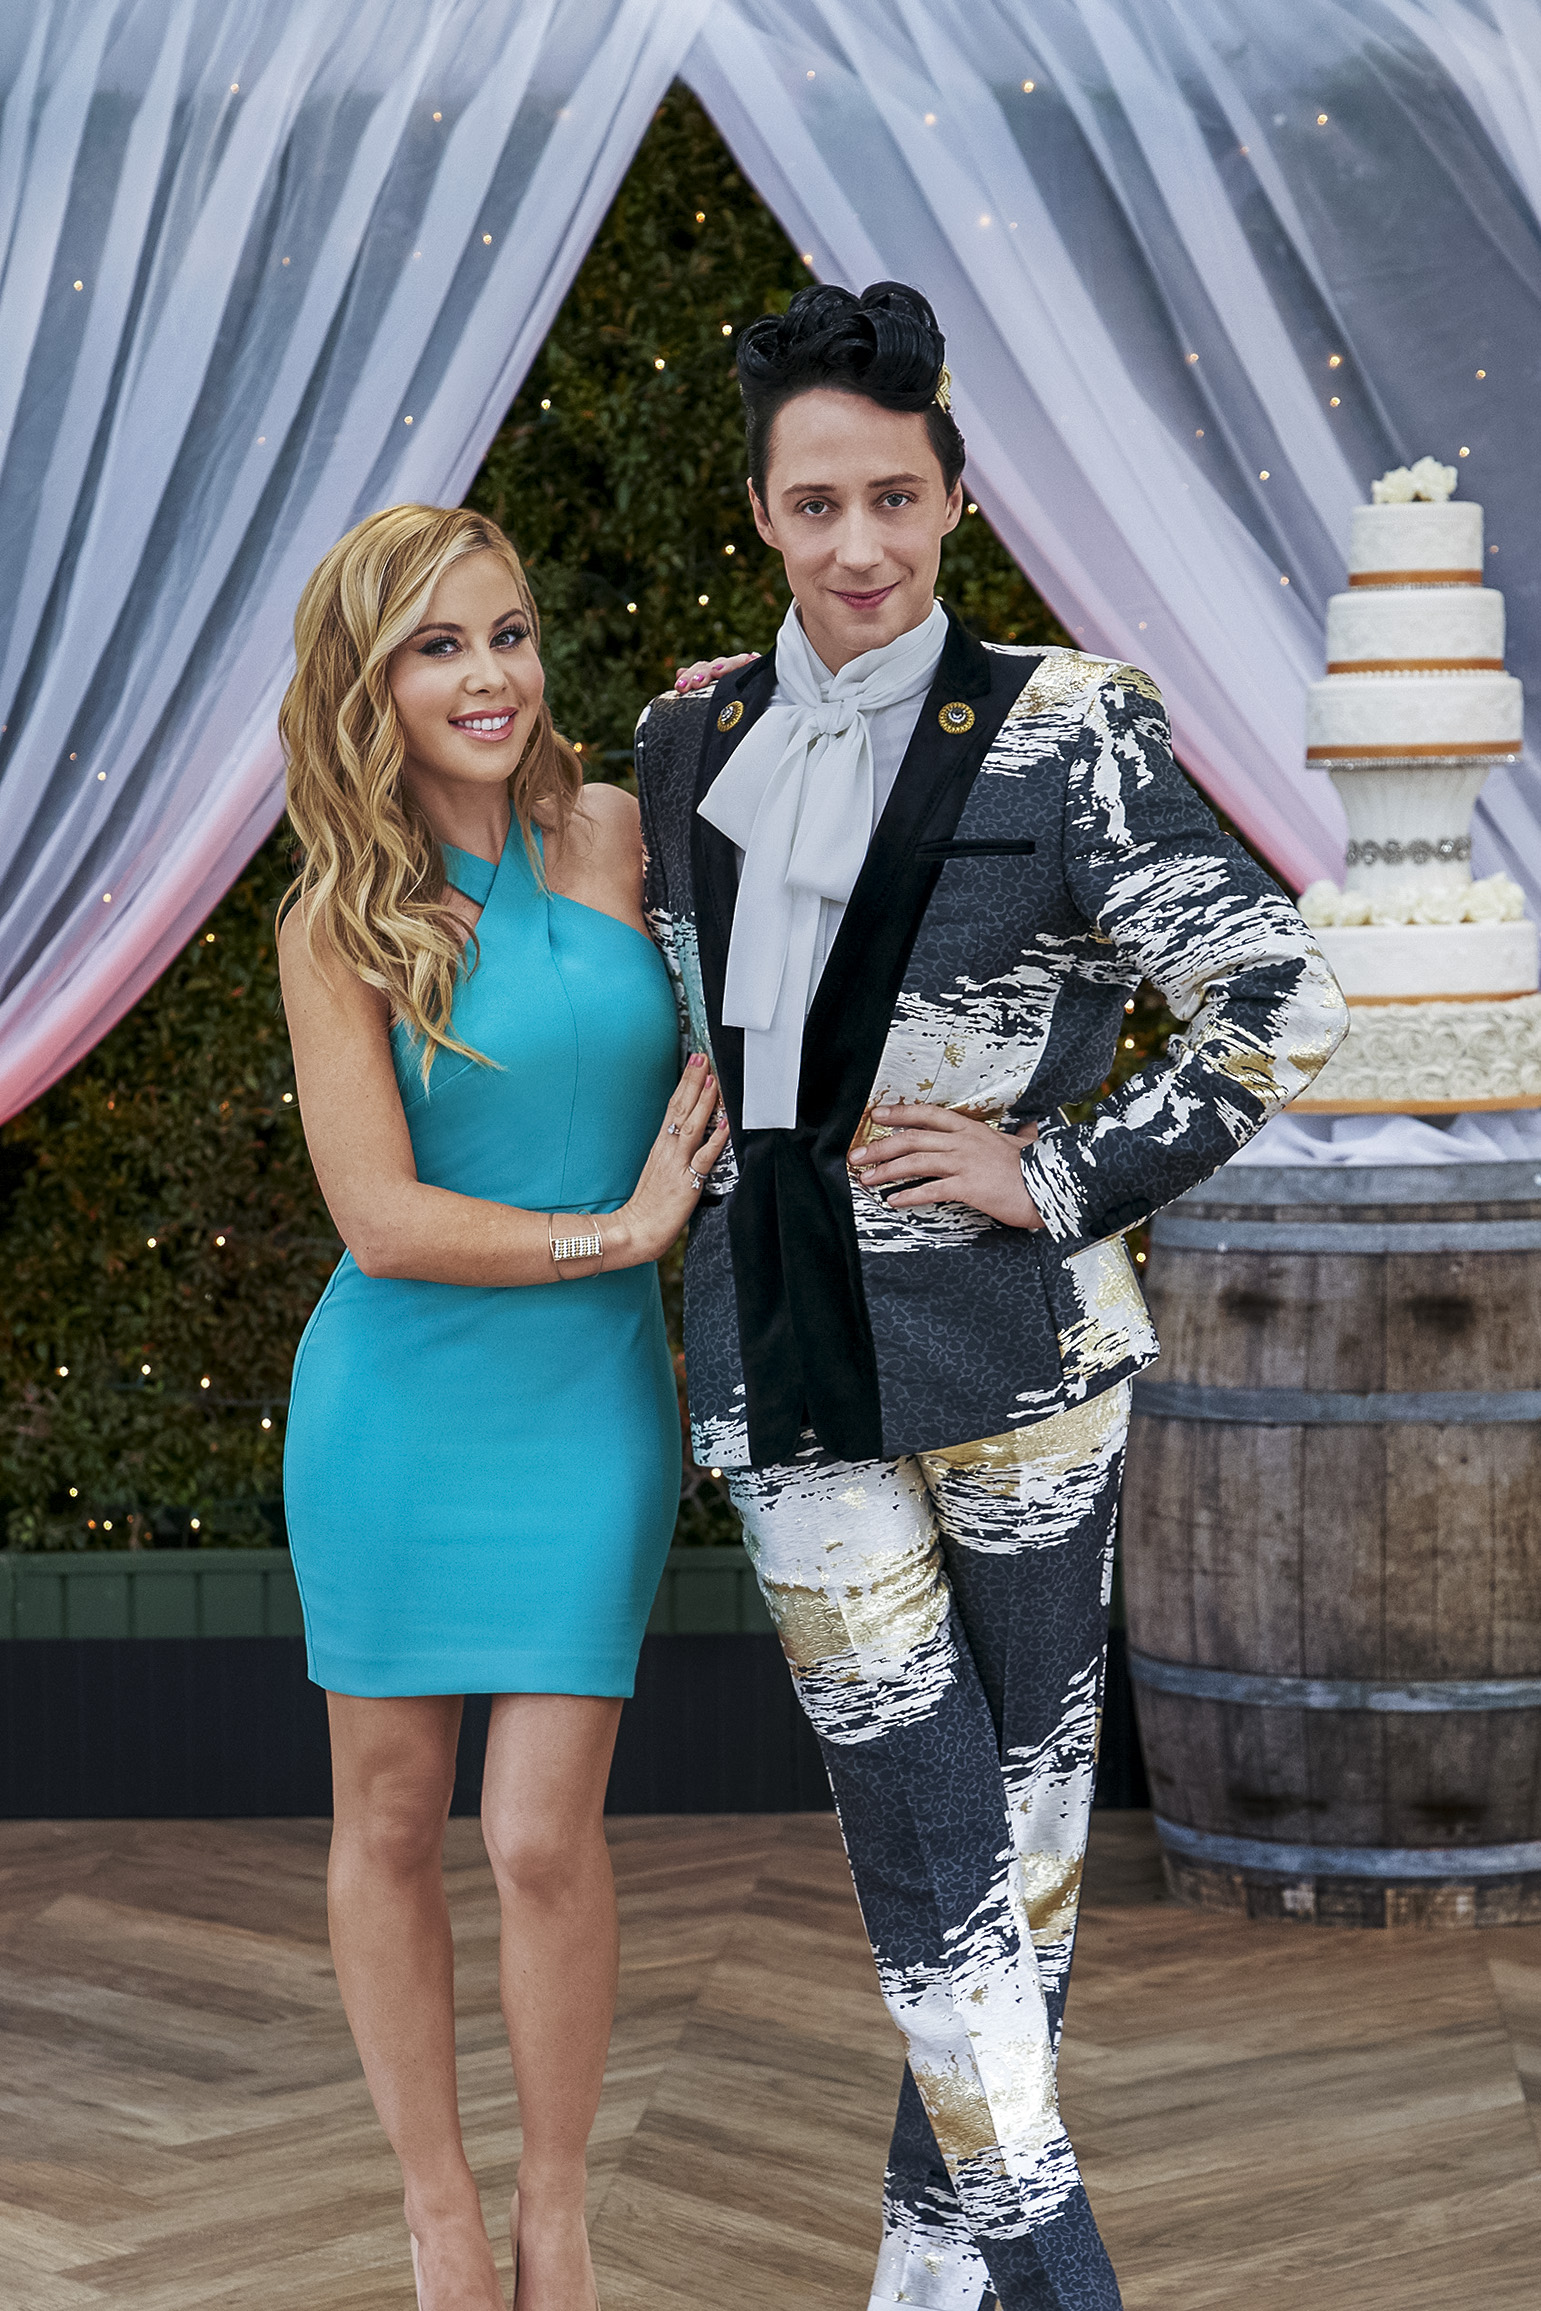 Hosts Tara Lipinski and Johnny Weir on Food Network's Wedding Cake Championship